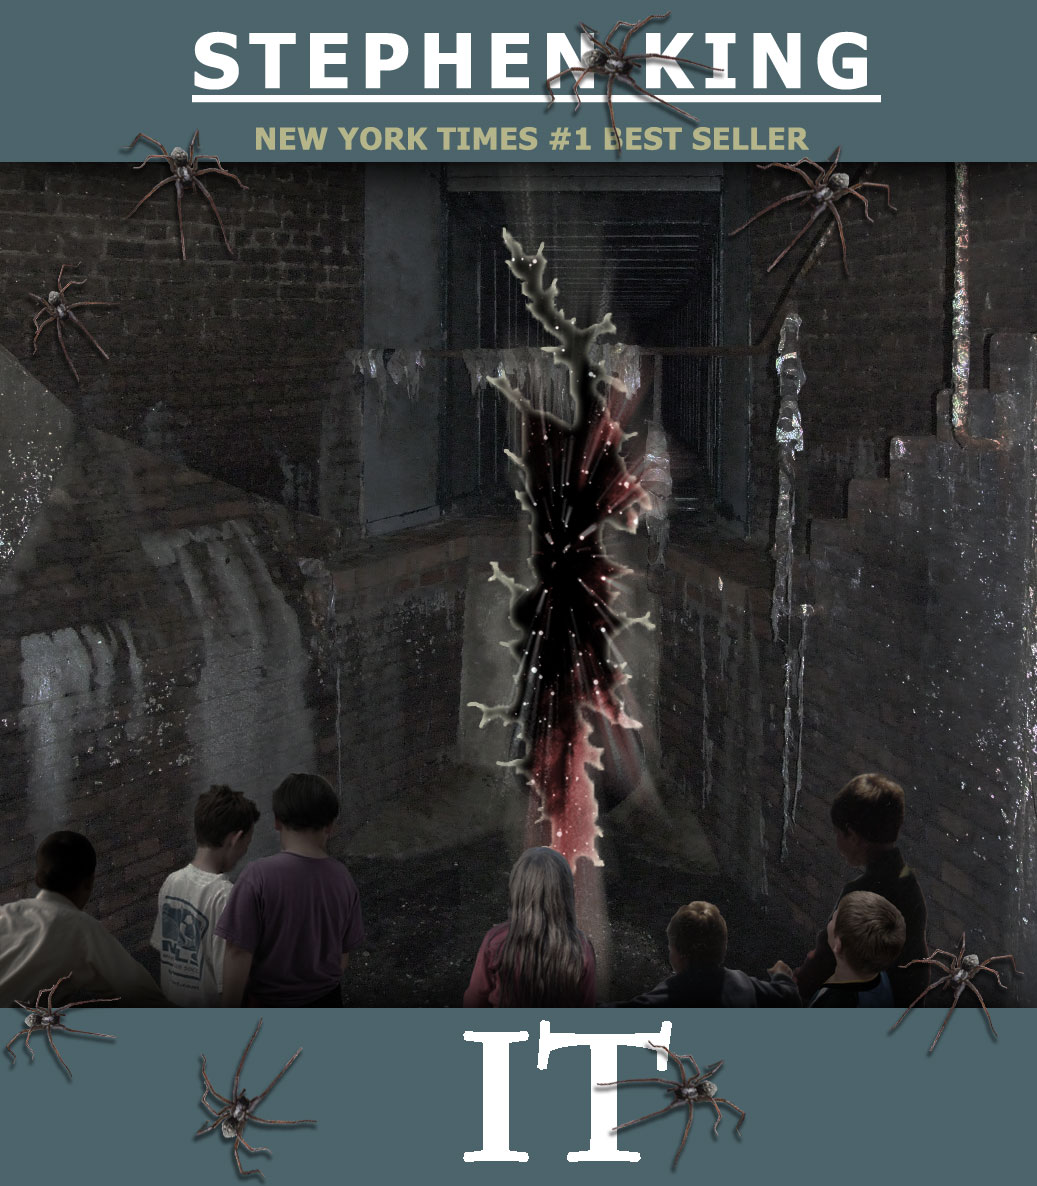 Stephen King's 'It' Book Cover